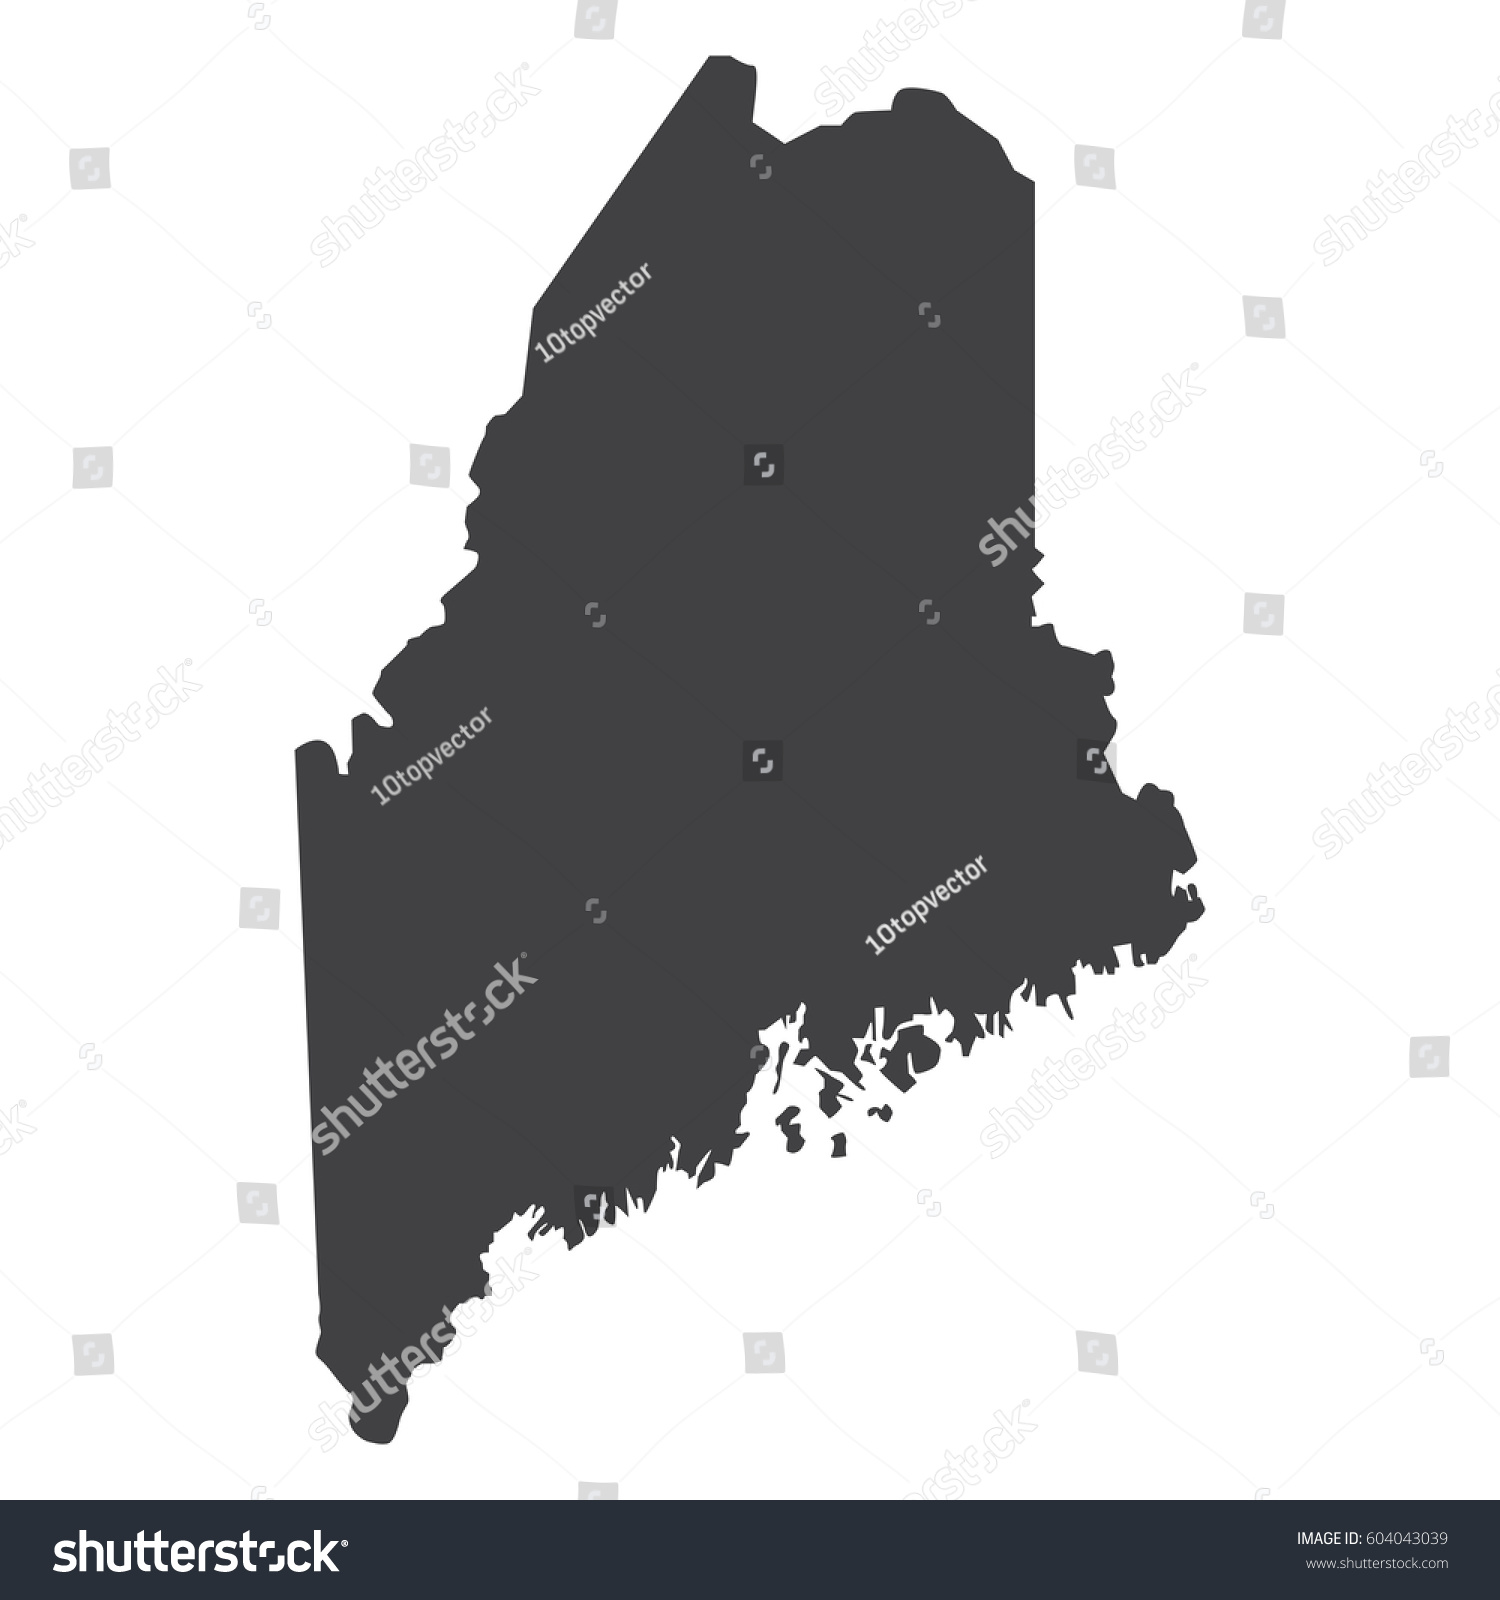 Maine State Map Black On White Stock Vector (Royalty Free ...